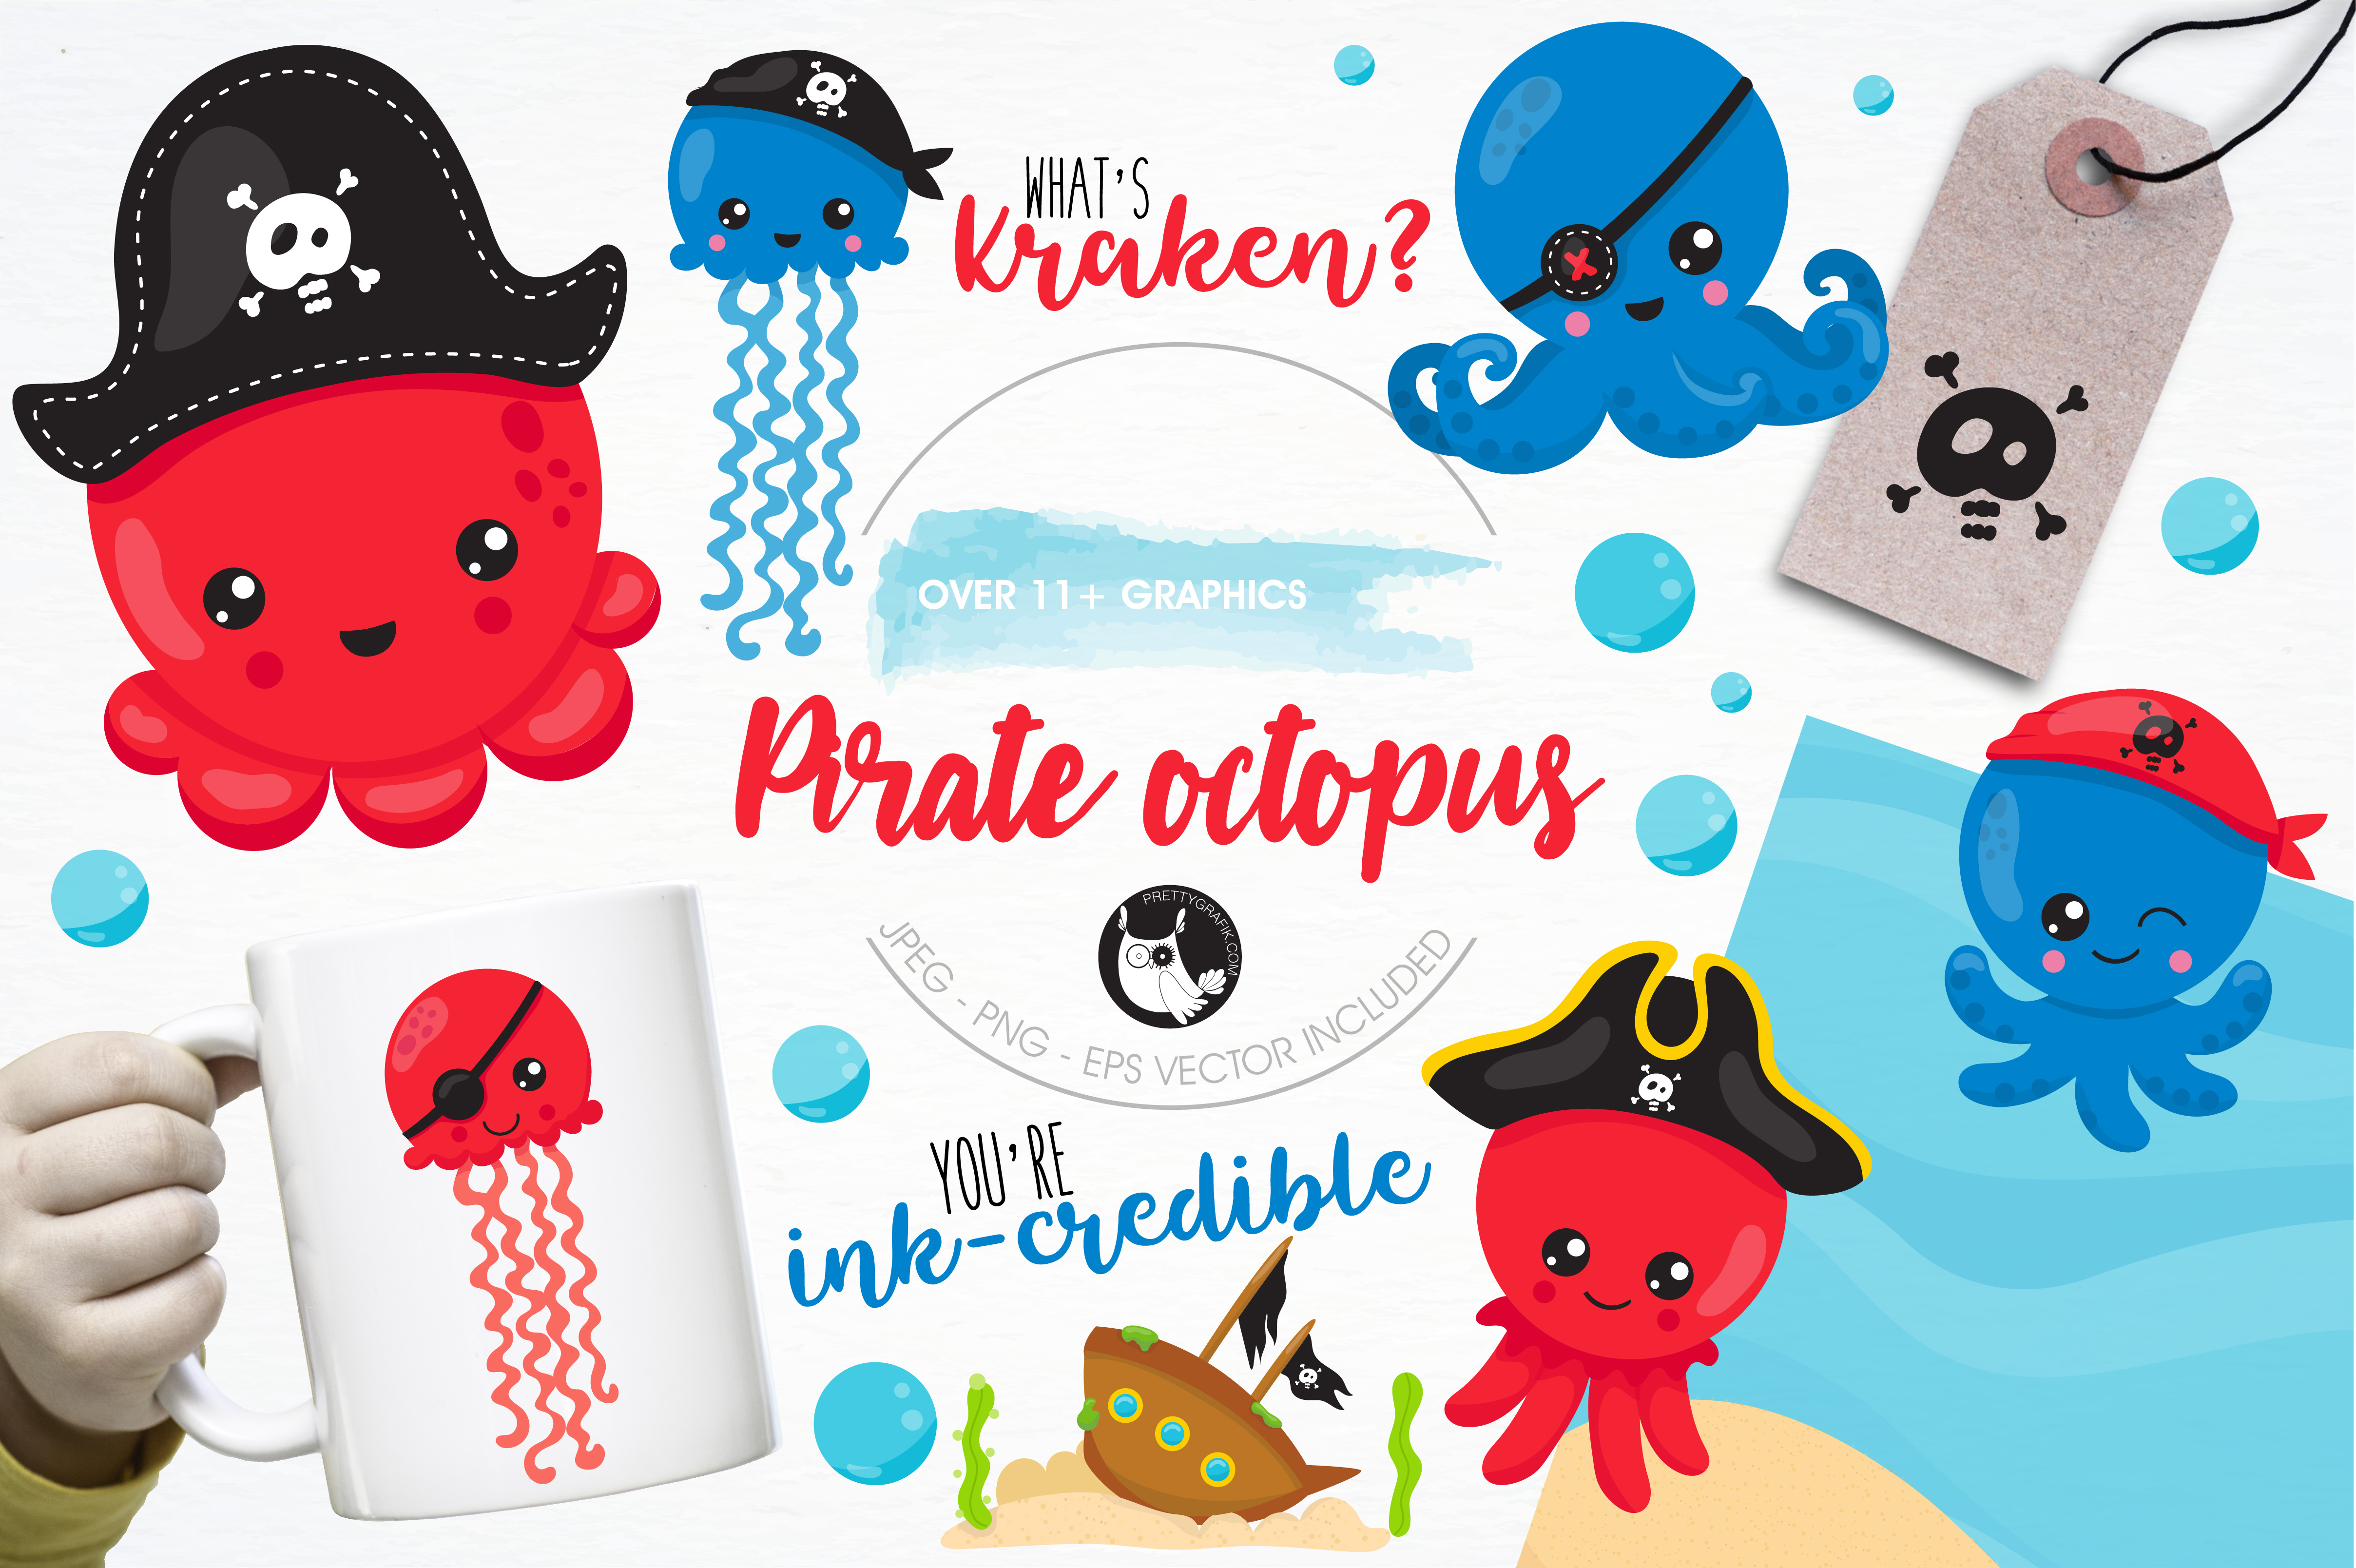 Pirate octopus graphics and illustrations example image 1